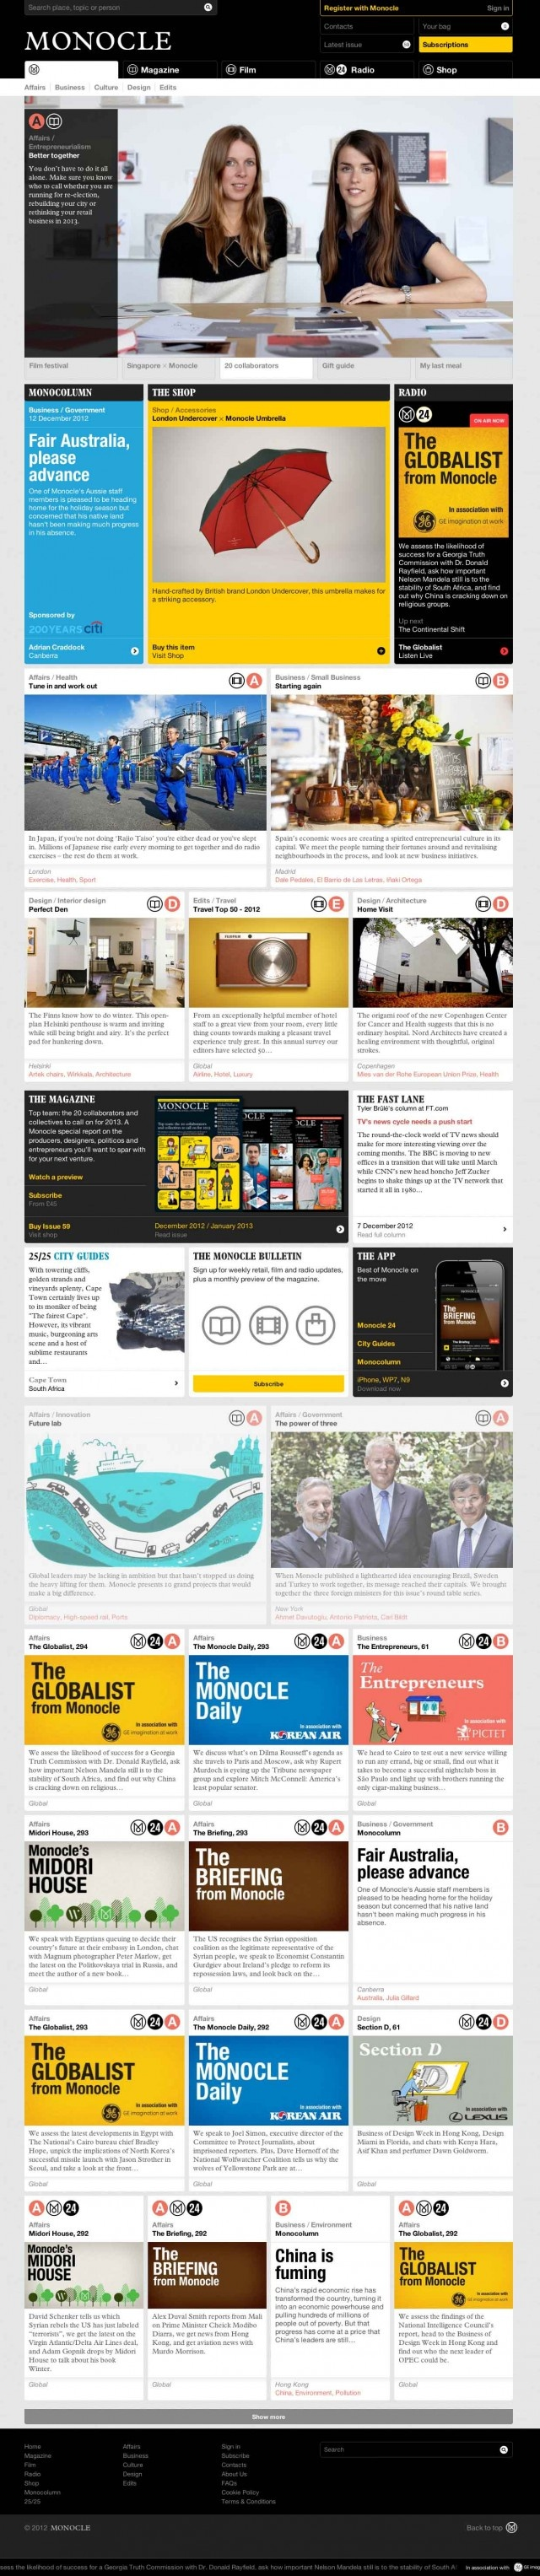 Love the Monocle Website, big inspiration. Think that the header area is a little crowded but definitely a favourite.